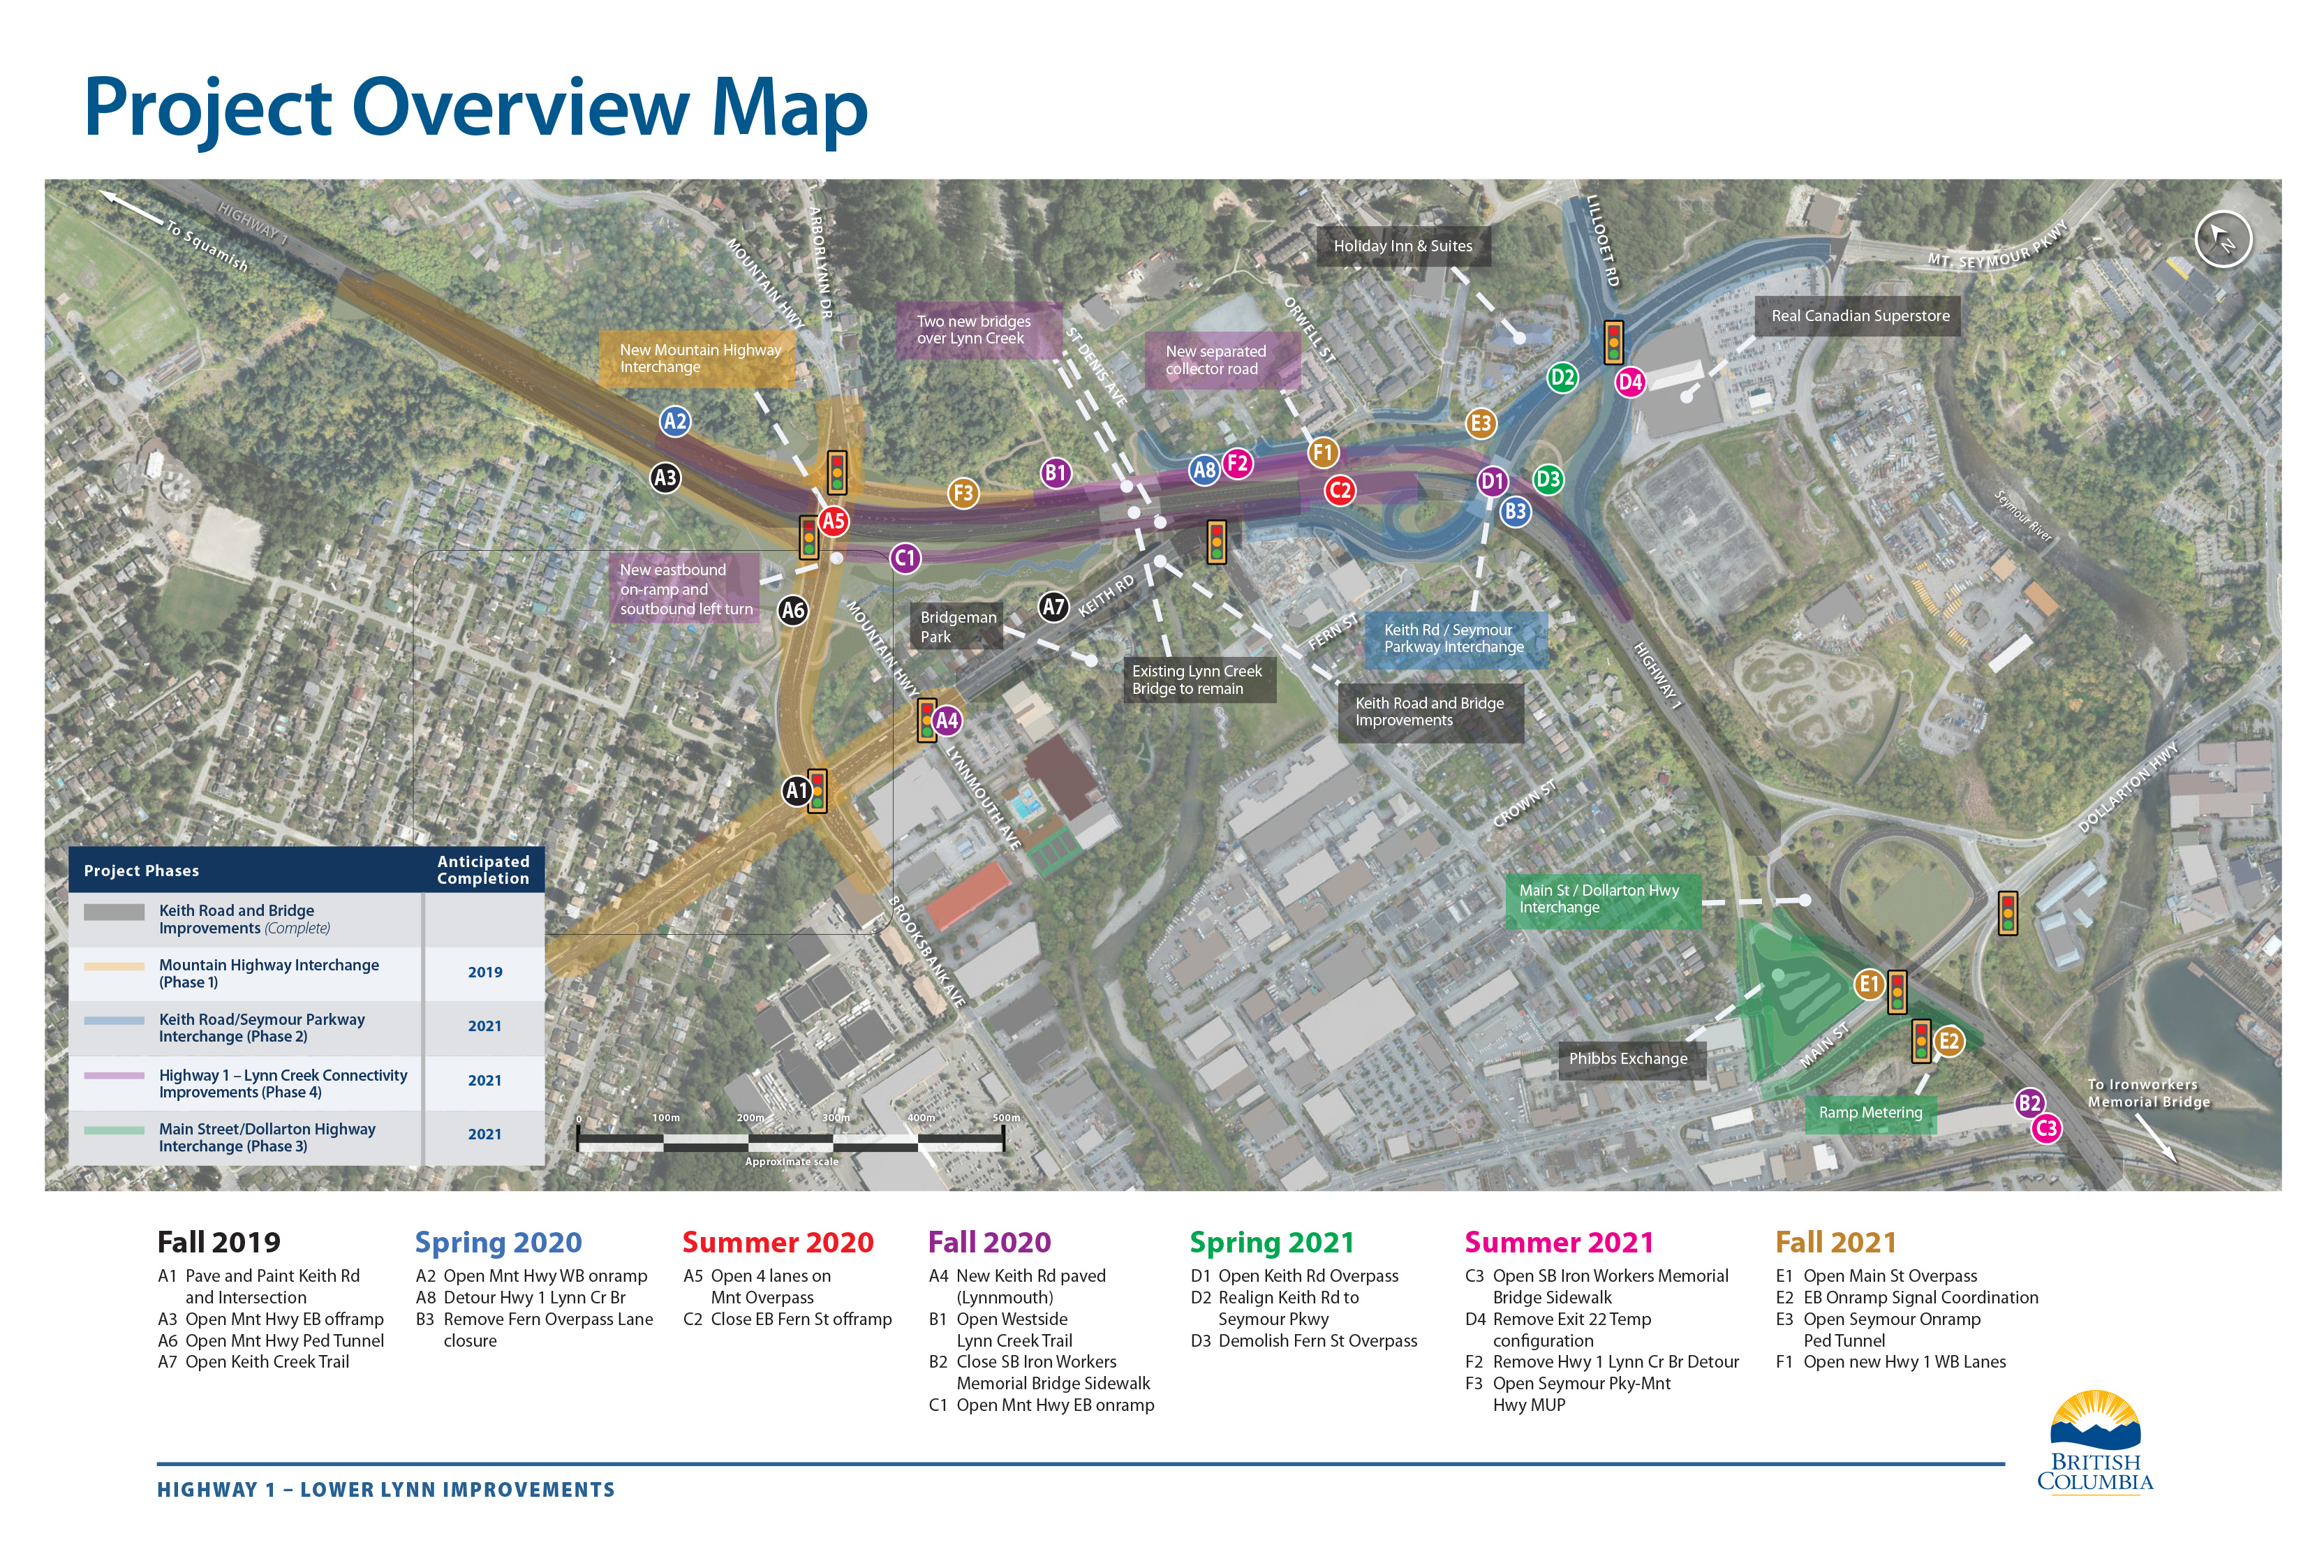 Full map showing the Lower Lynn Improvements